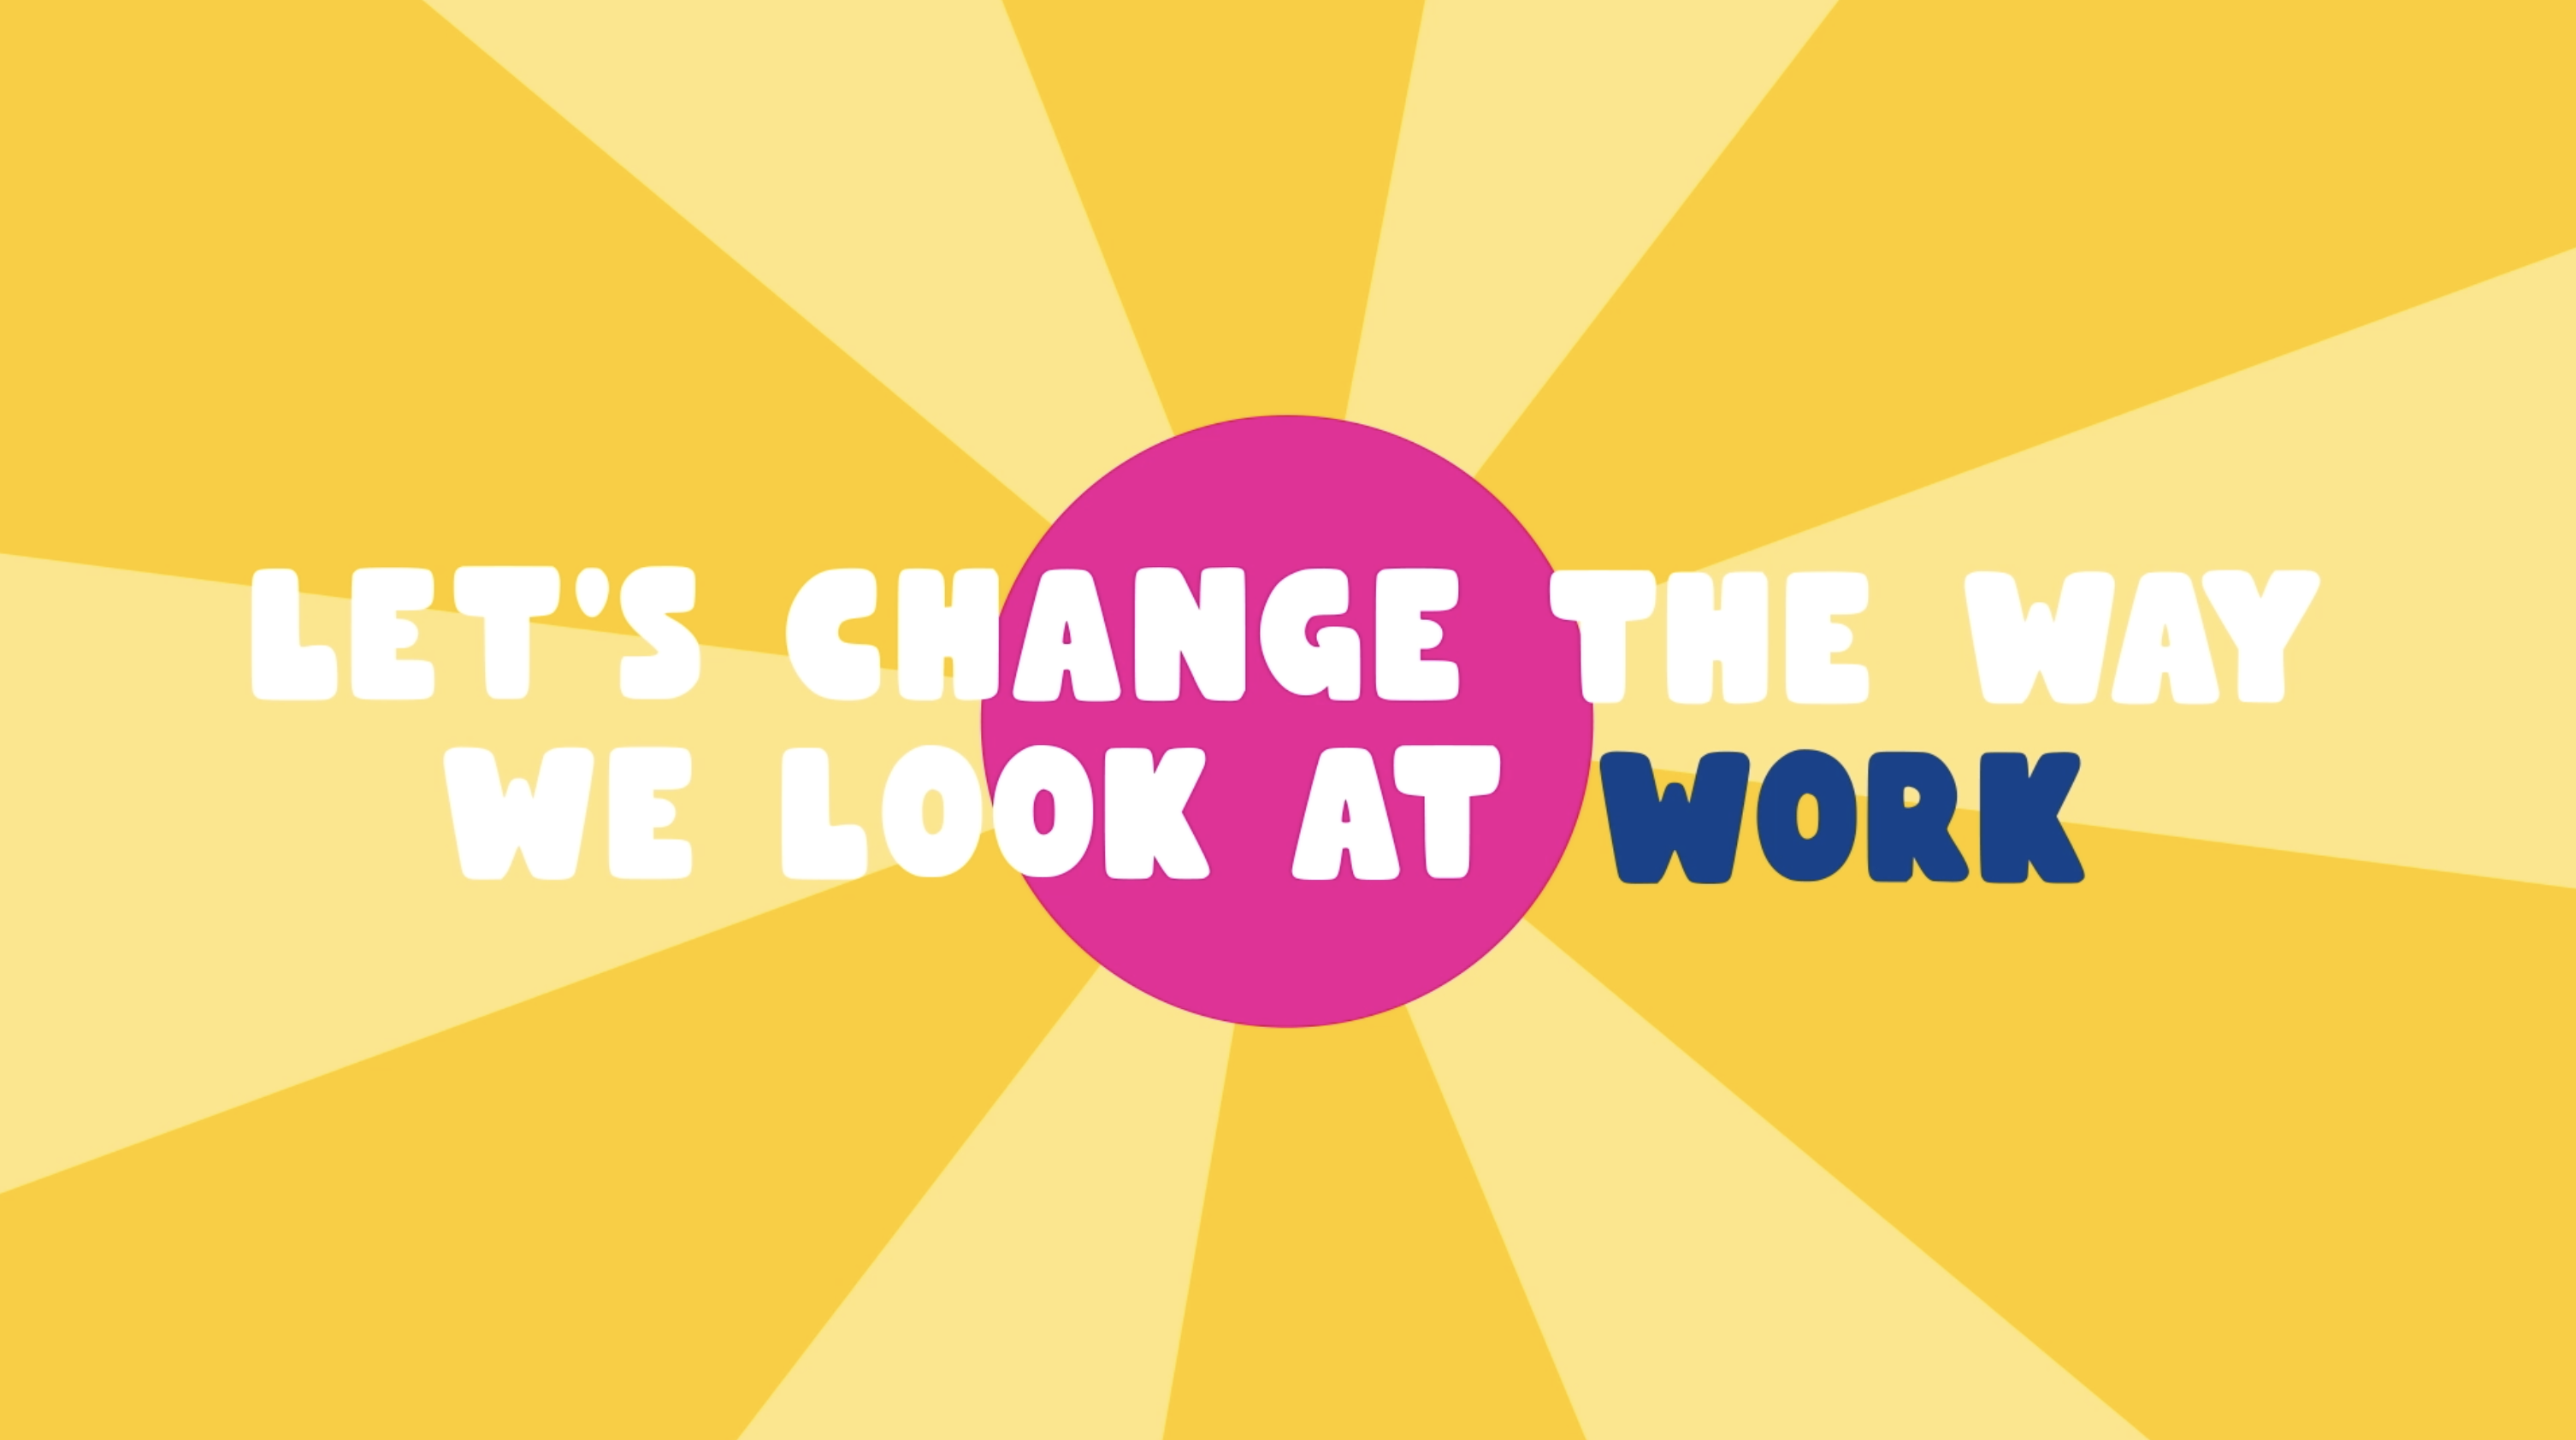 SEEK Animation Shows the Way Forward for Progress in the Workplace